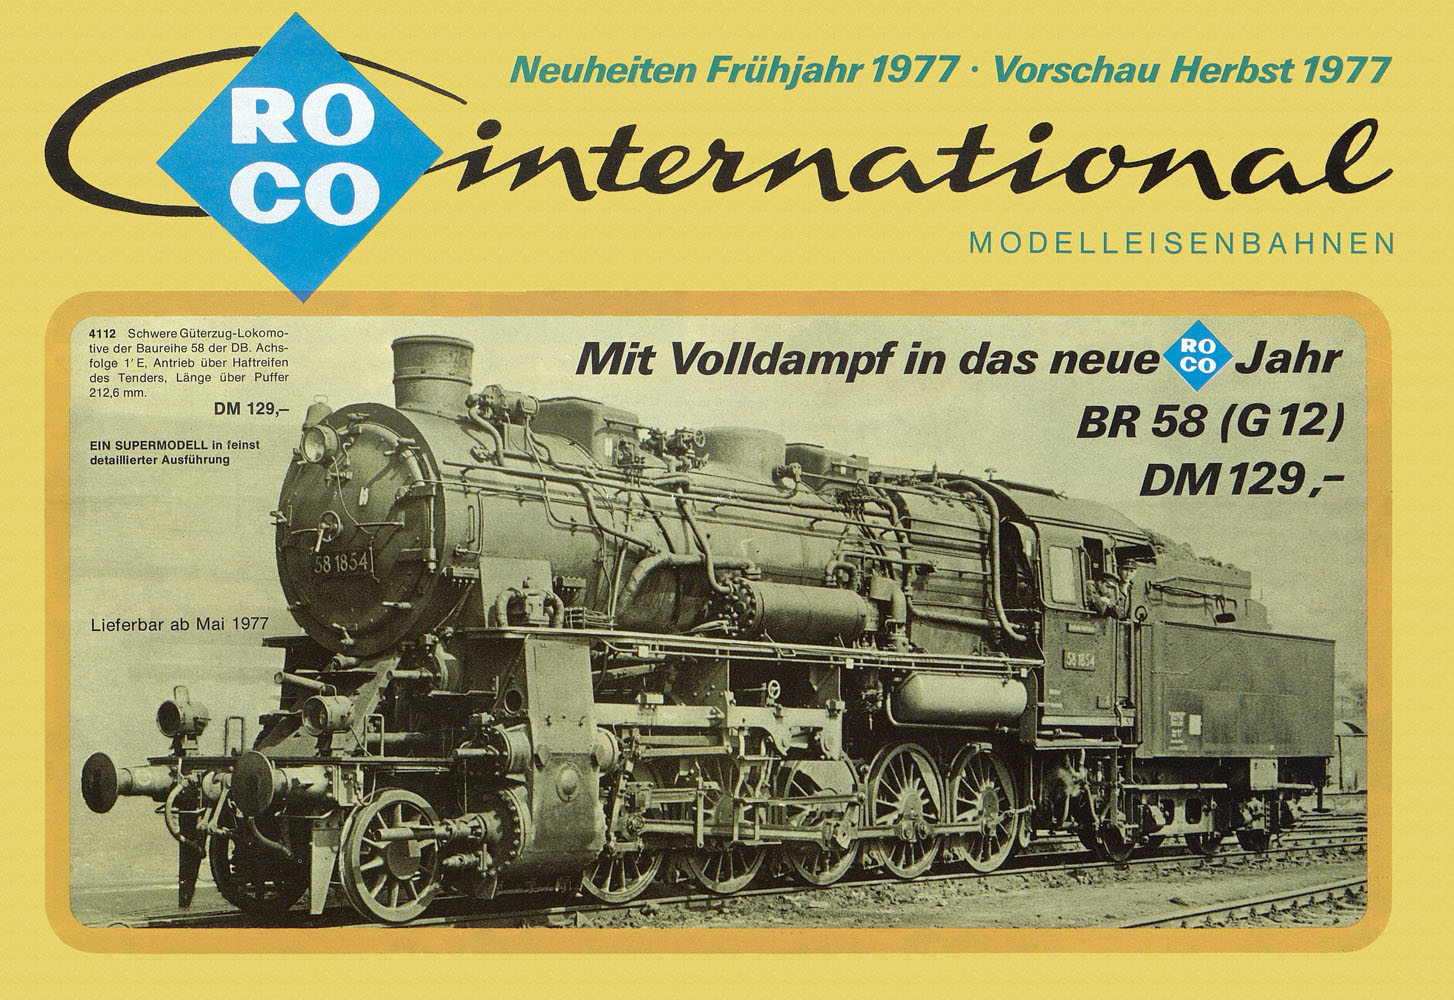 ROCO International Neuheiten 1977